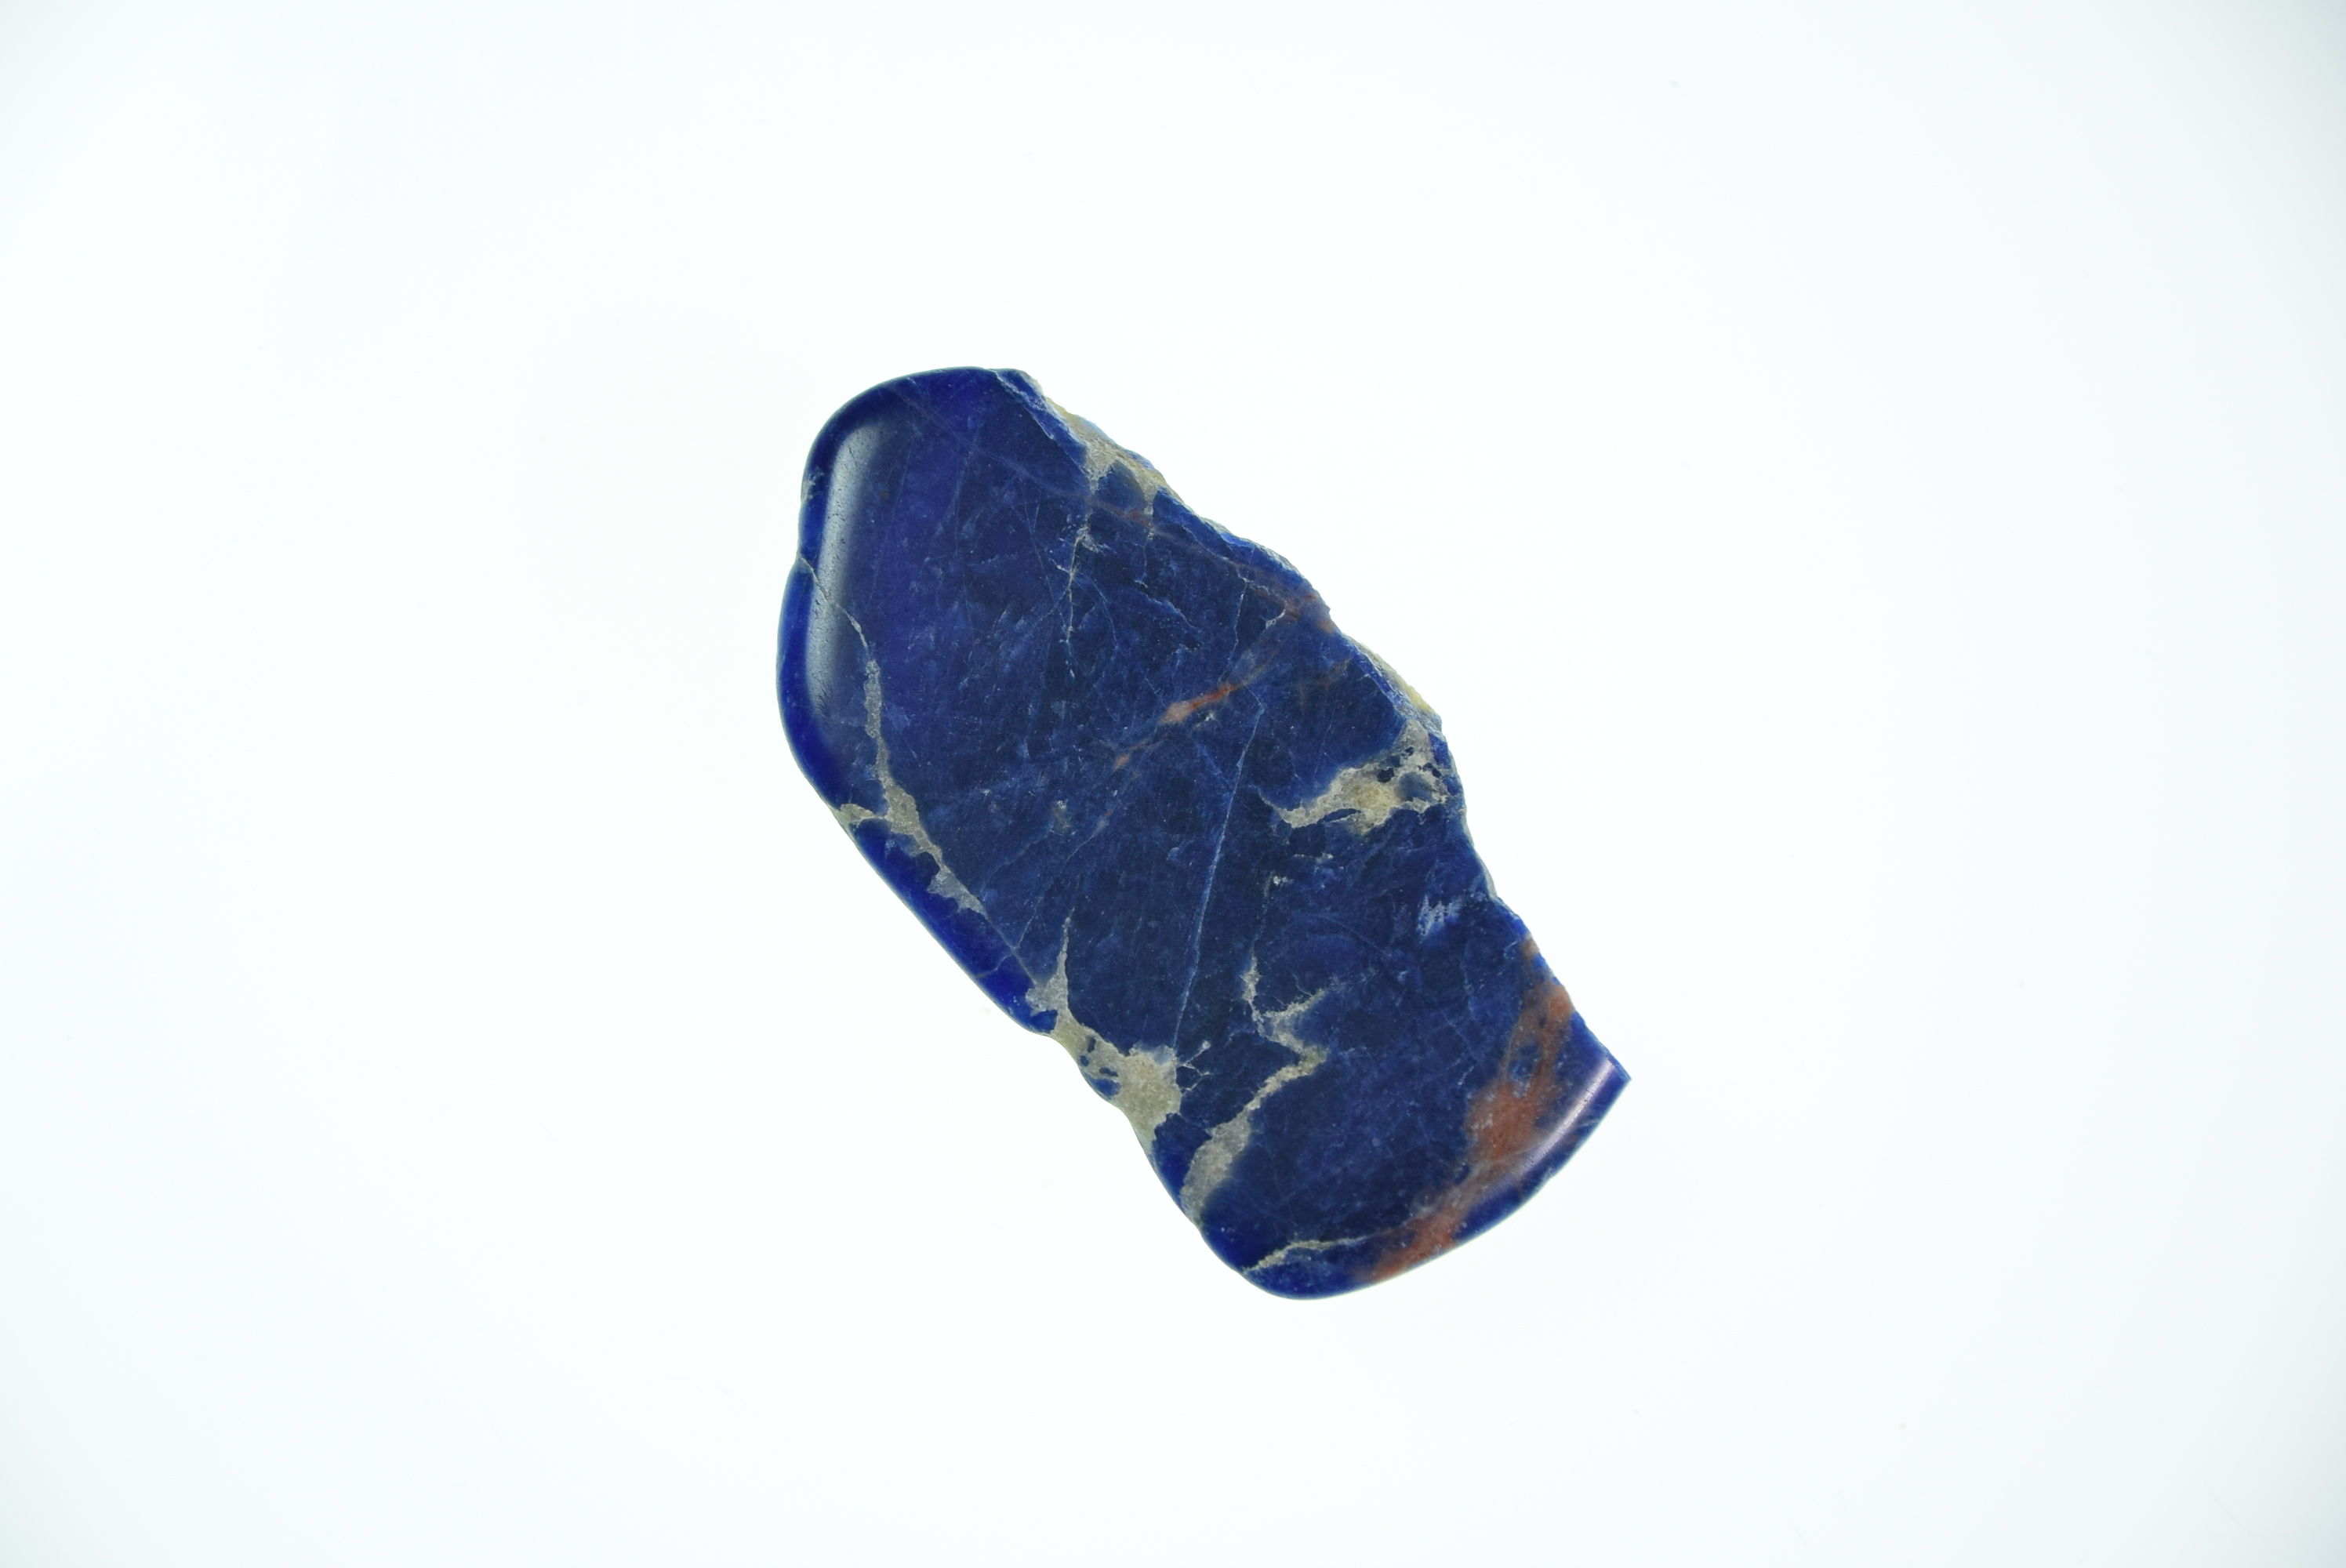 #4611 Sodalite (tumble polished)